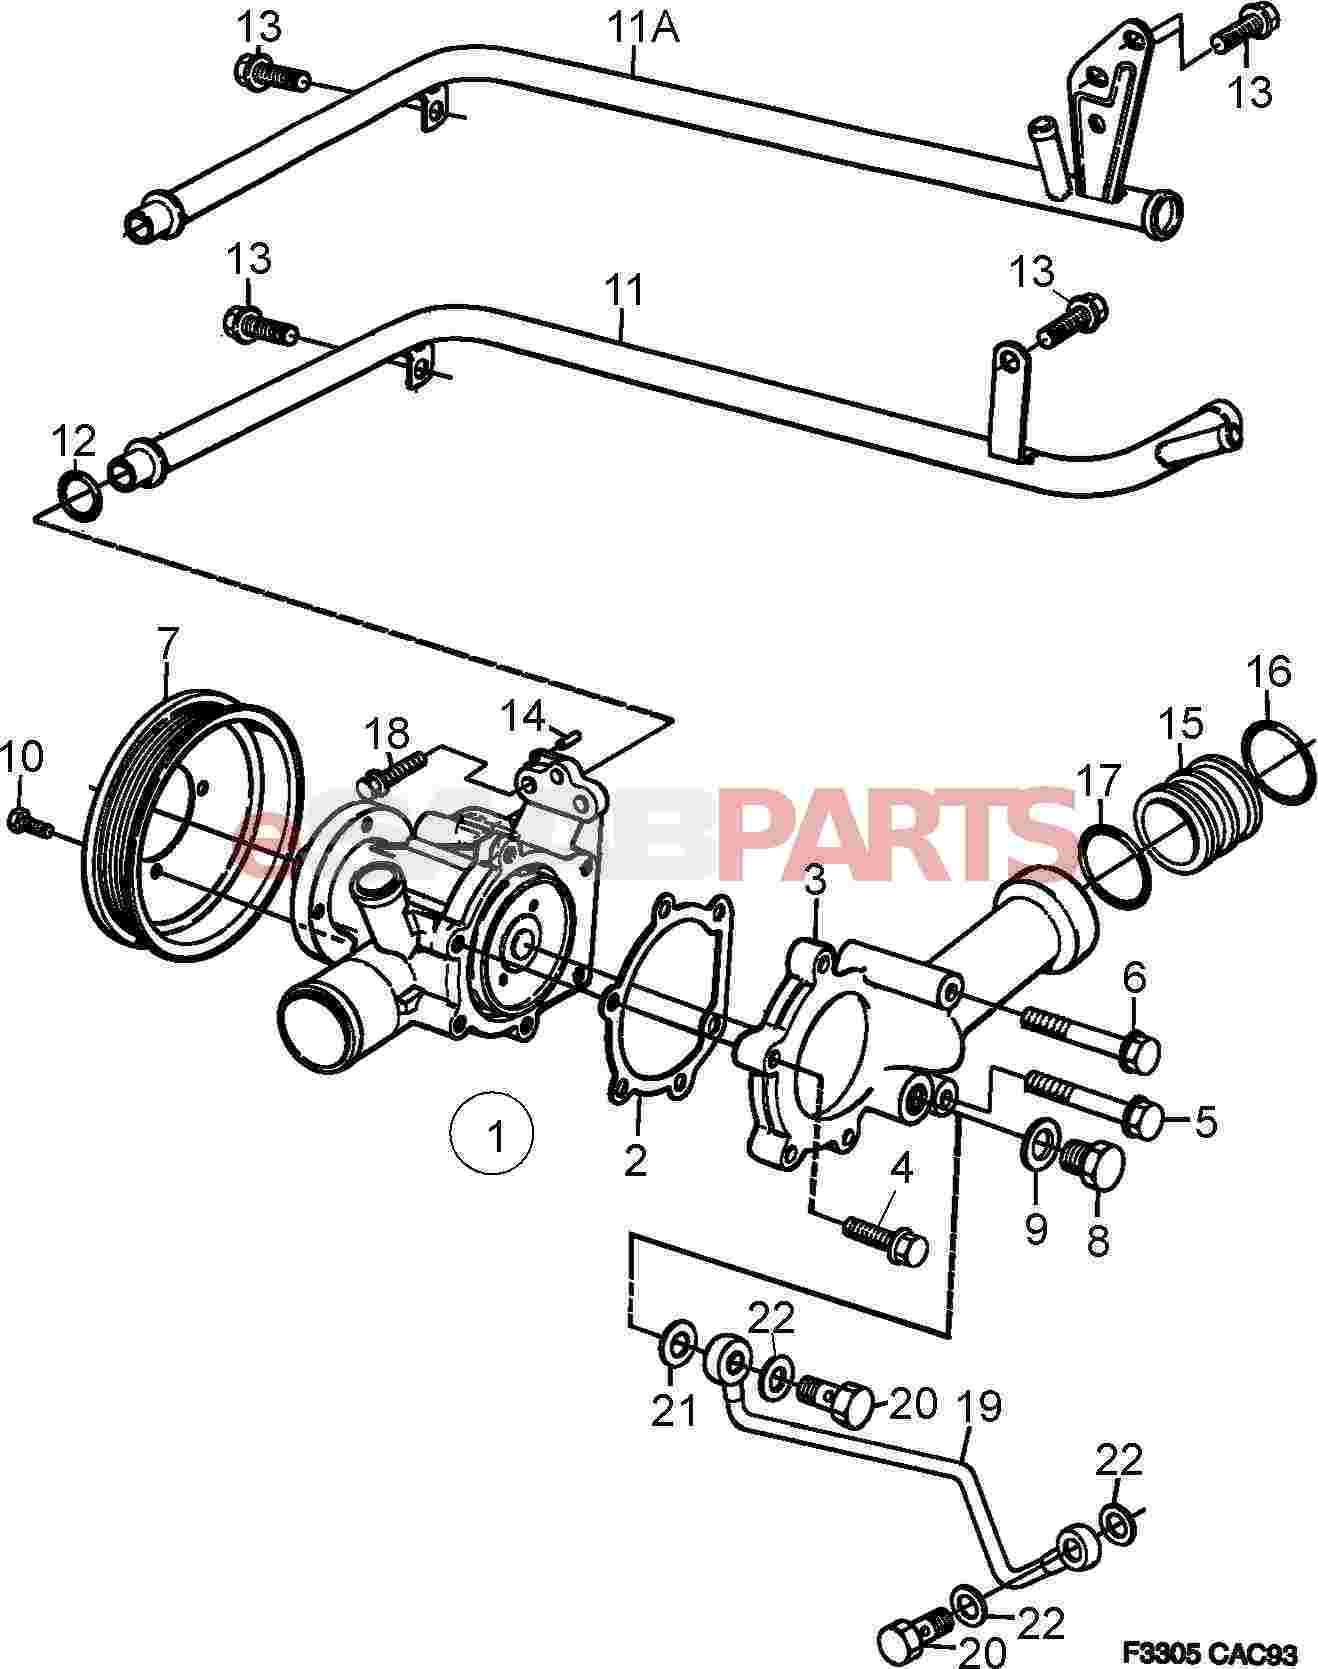 hight resolution of 92150435 saab gasket genuine saab parts from esaabparts com cadillac cooling system diagram saab cooling system diagram